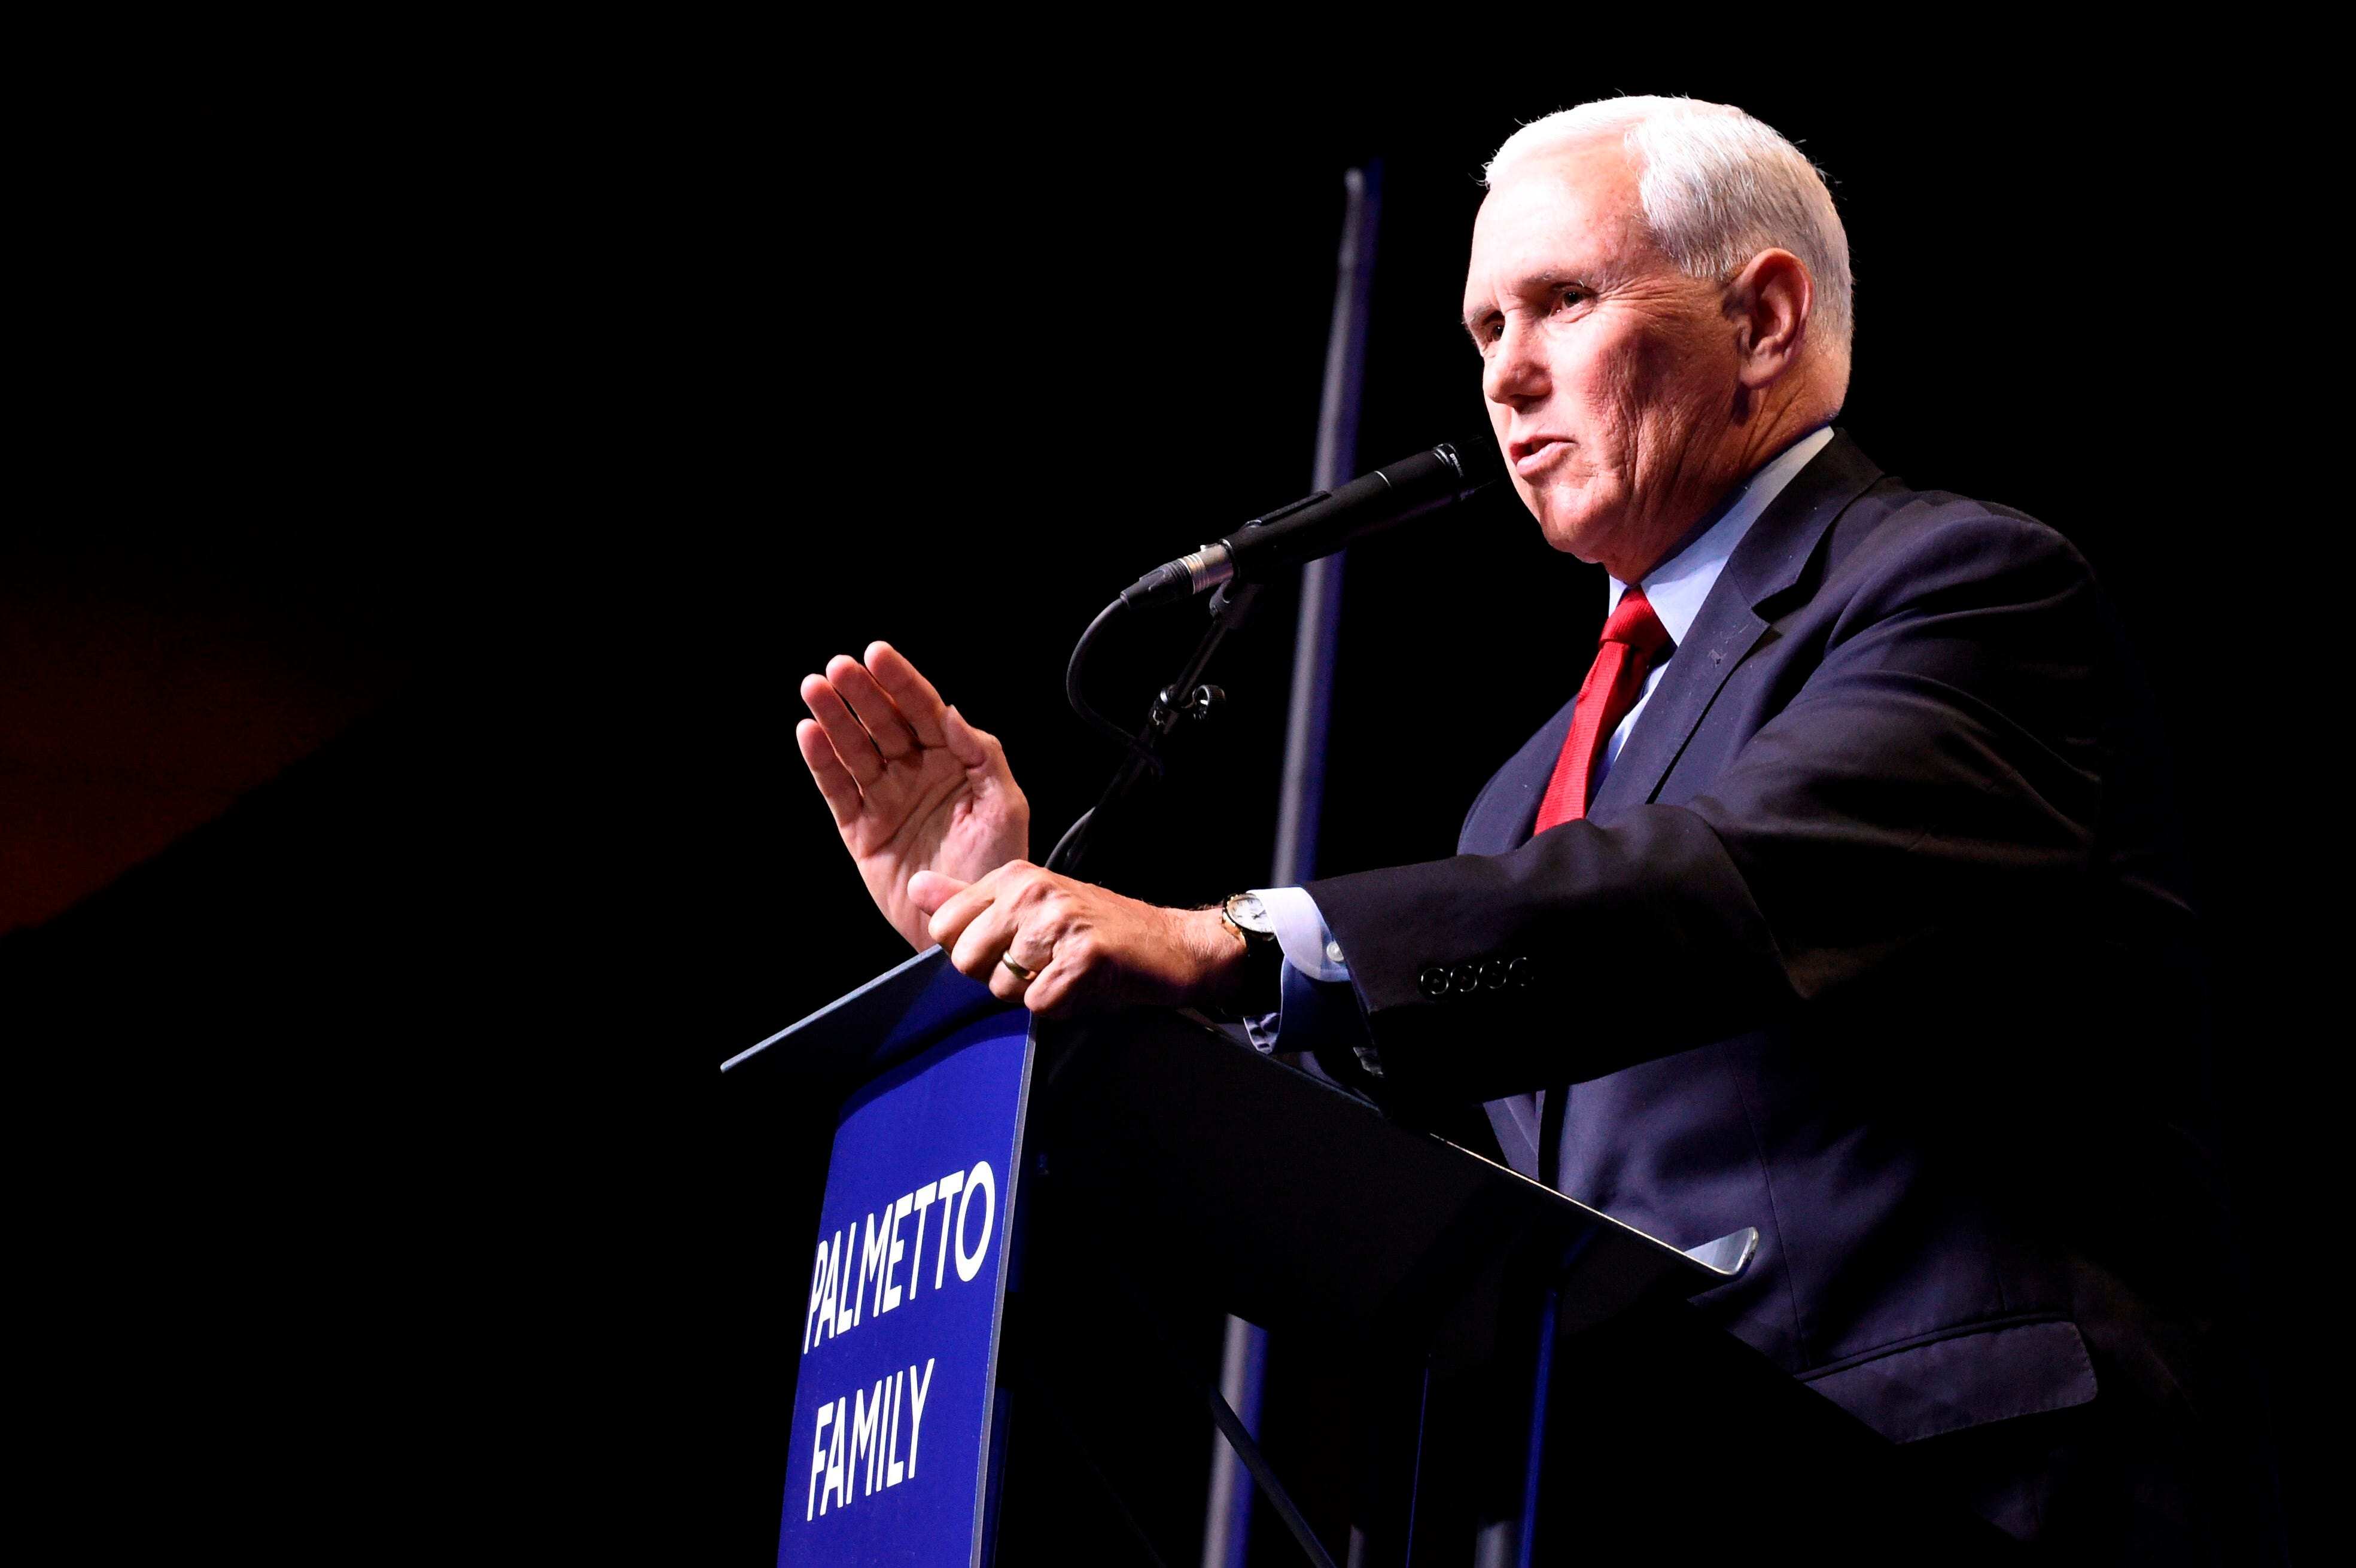 Praise for Trump, attacks on Biden, silence on Jan. 6: Mike Pence makes first speech since leaving office in pivotal SC